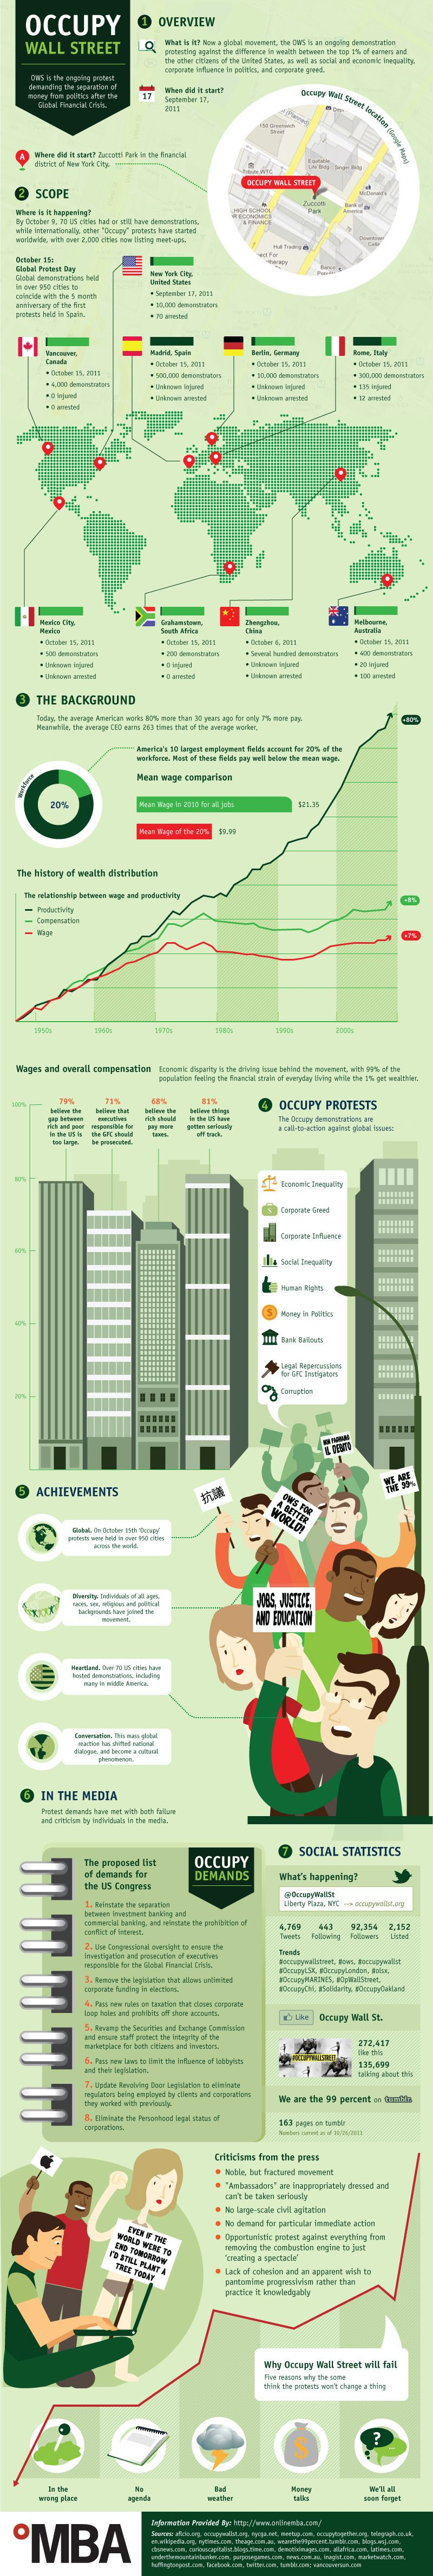 Occuopy Wall Street infographic